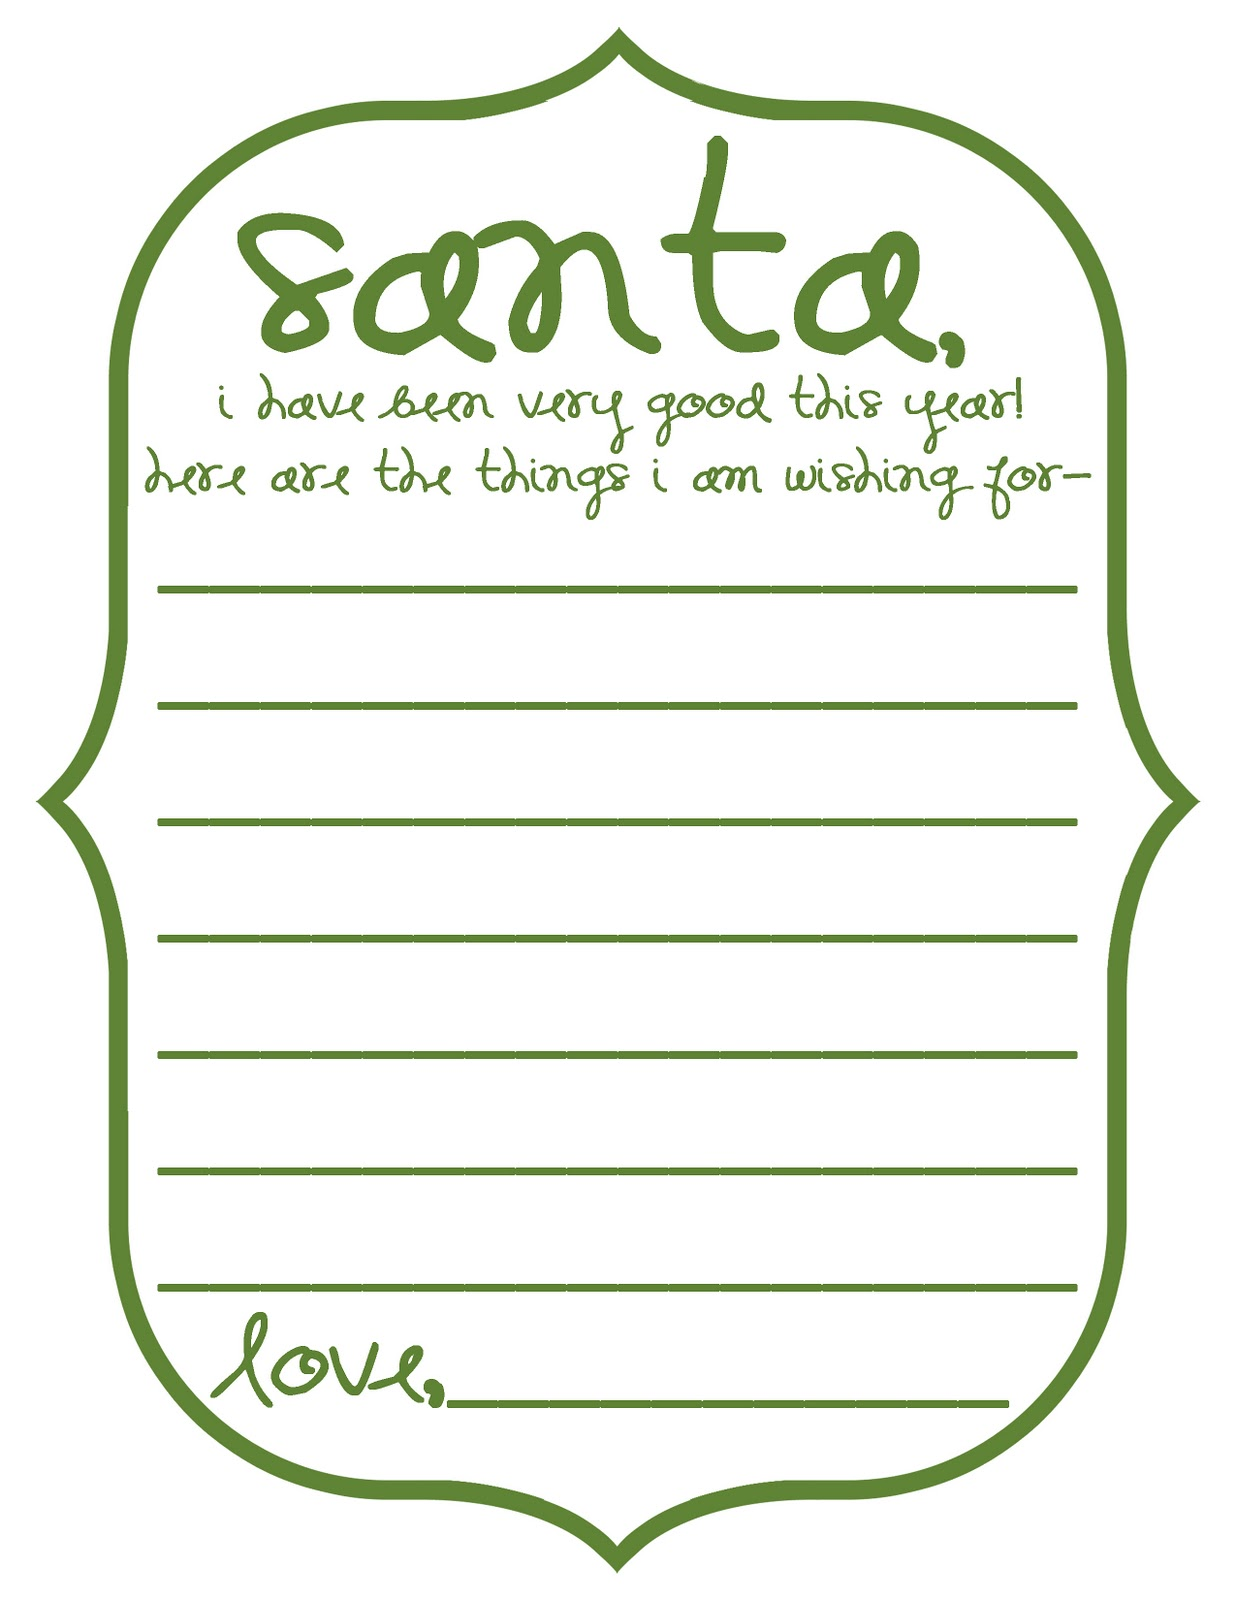 dear santa writing paper See 4 best images of printable santa letter writing paper inspiring printable santa letter writing paper printable images free printable santa writing paper santa letter paper template dear santa letter free printable christmas letter writing paper.